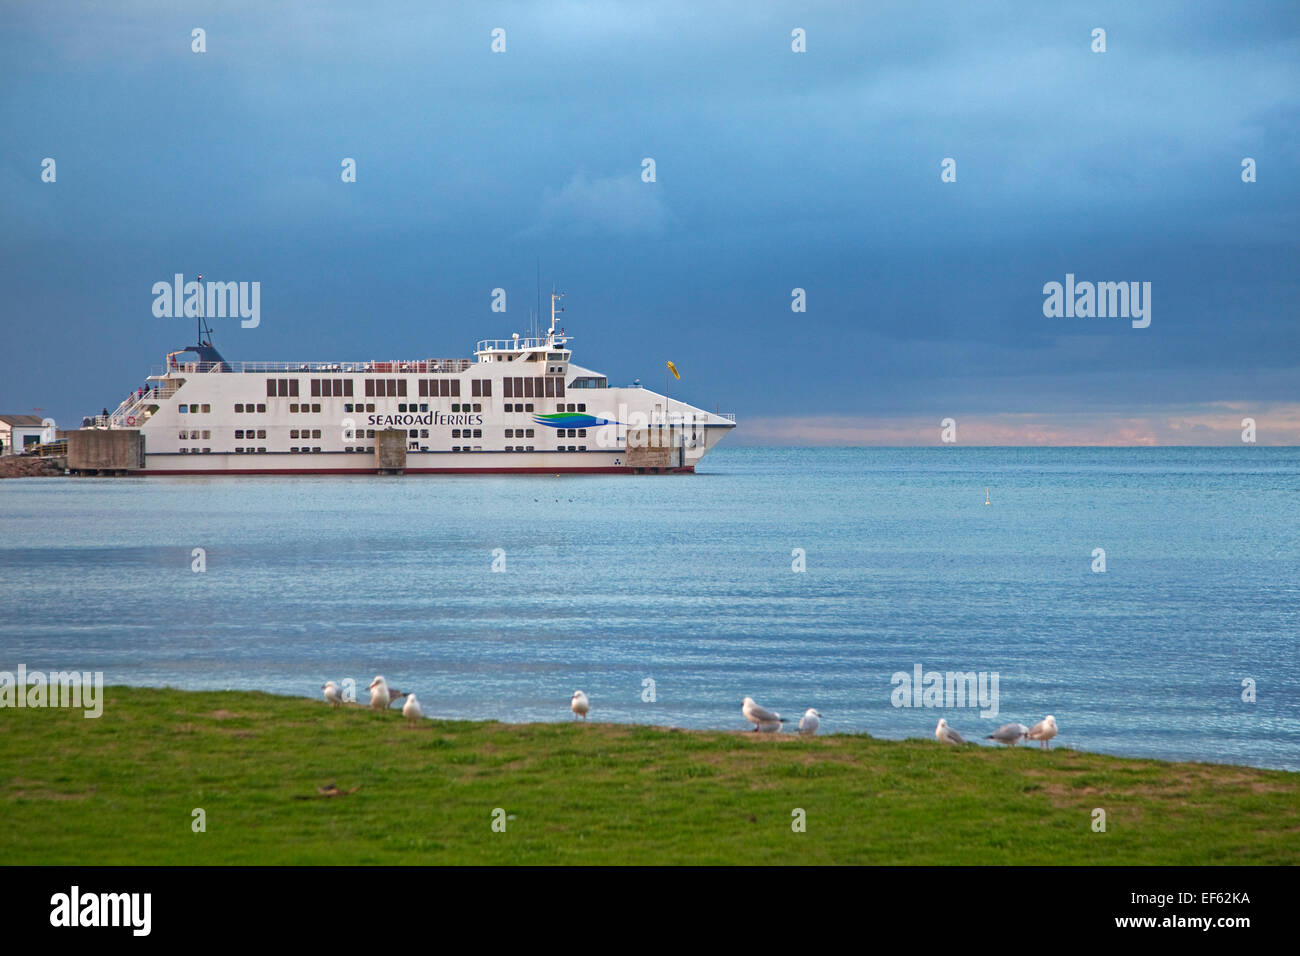 The ferry MV Queenscliff from Searoad Ferries docked at Sorrento in the Port Phillip Bay at sunset, Victoria, Australia - Stock Image